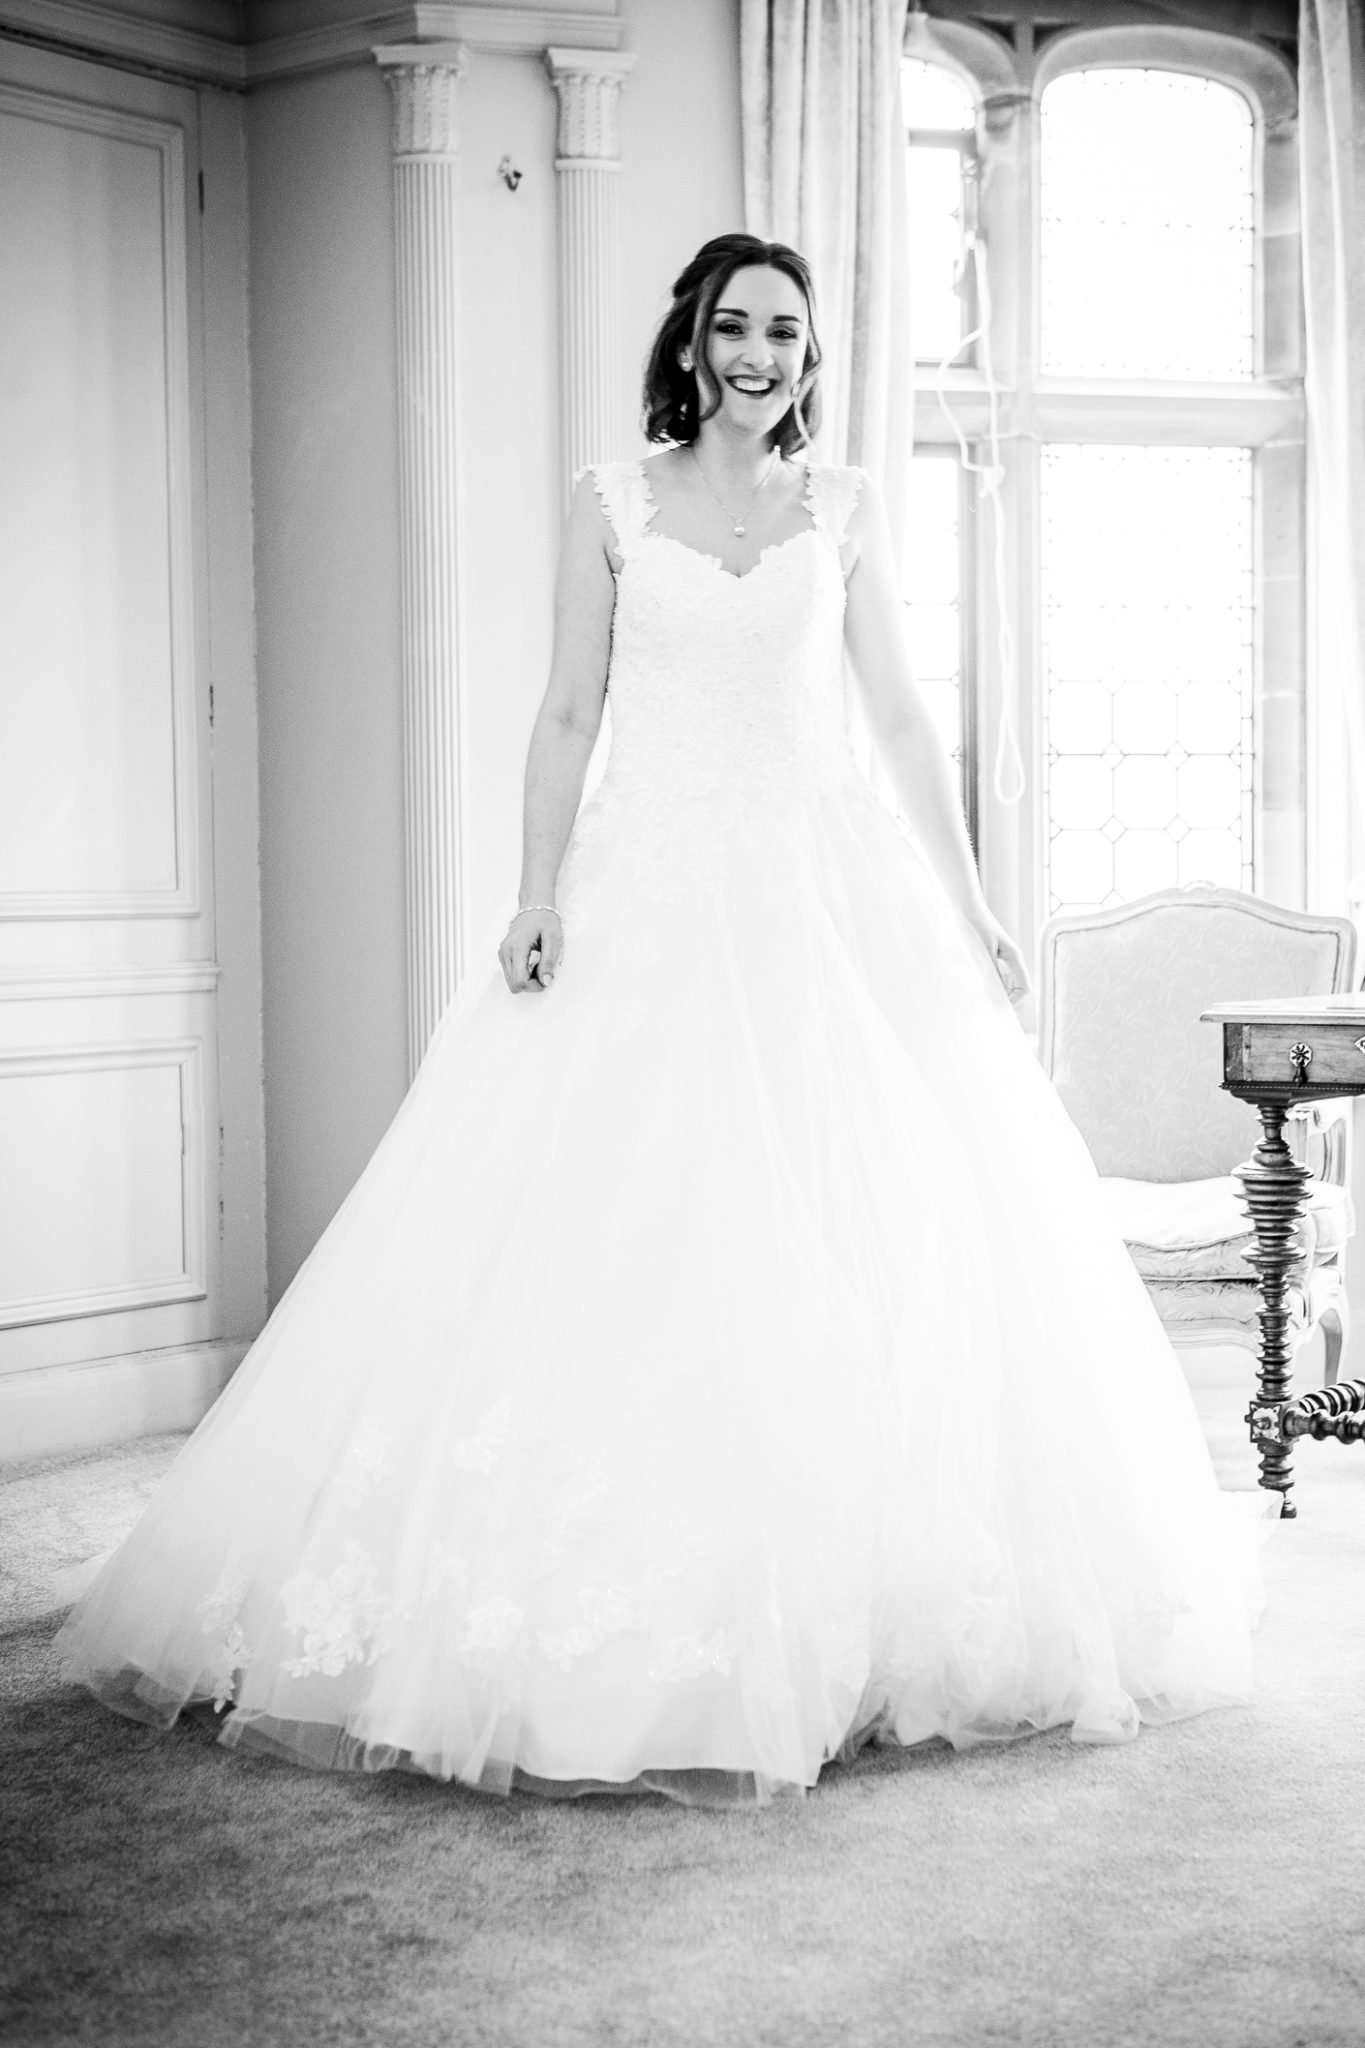 photography-of-the-bride-in-the-wedding-dress